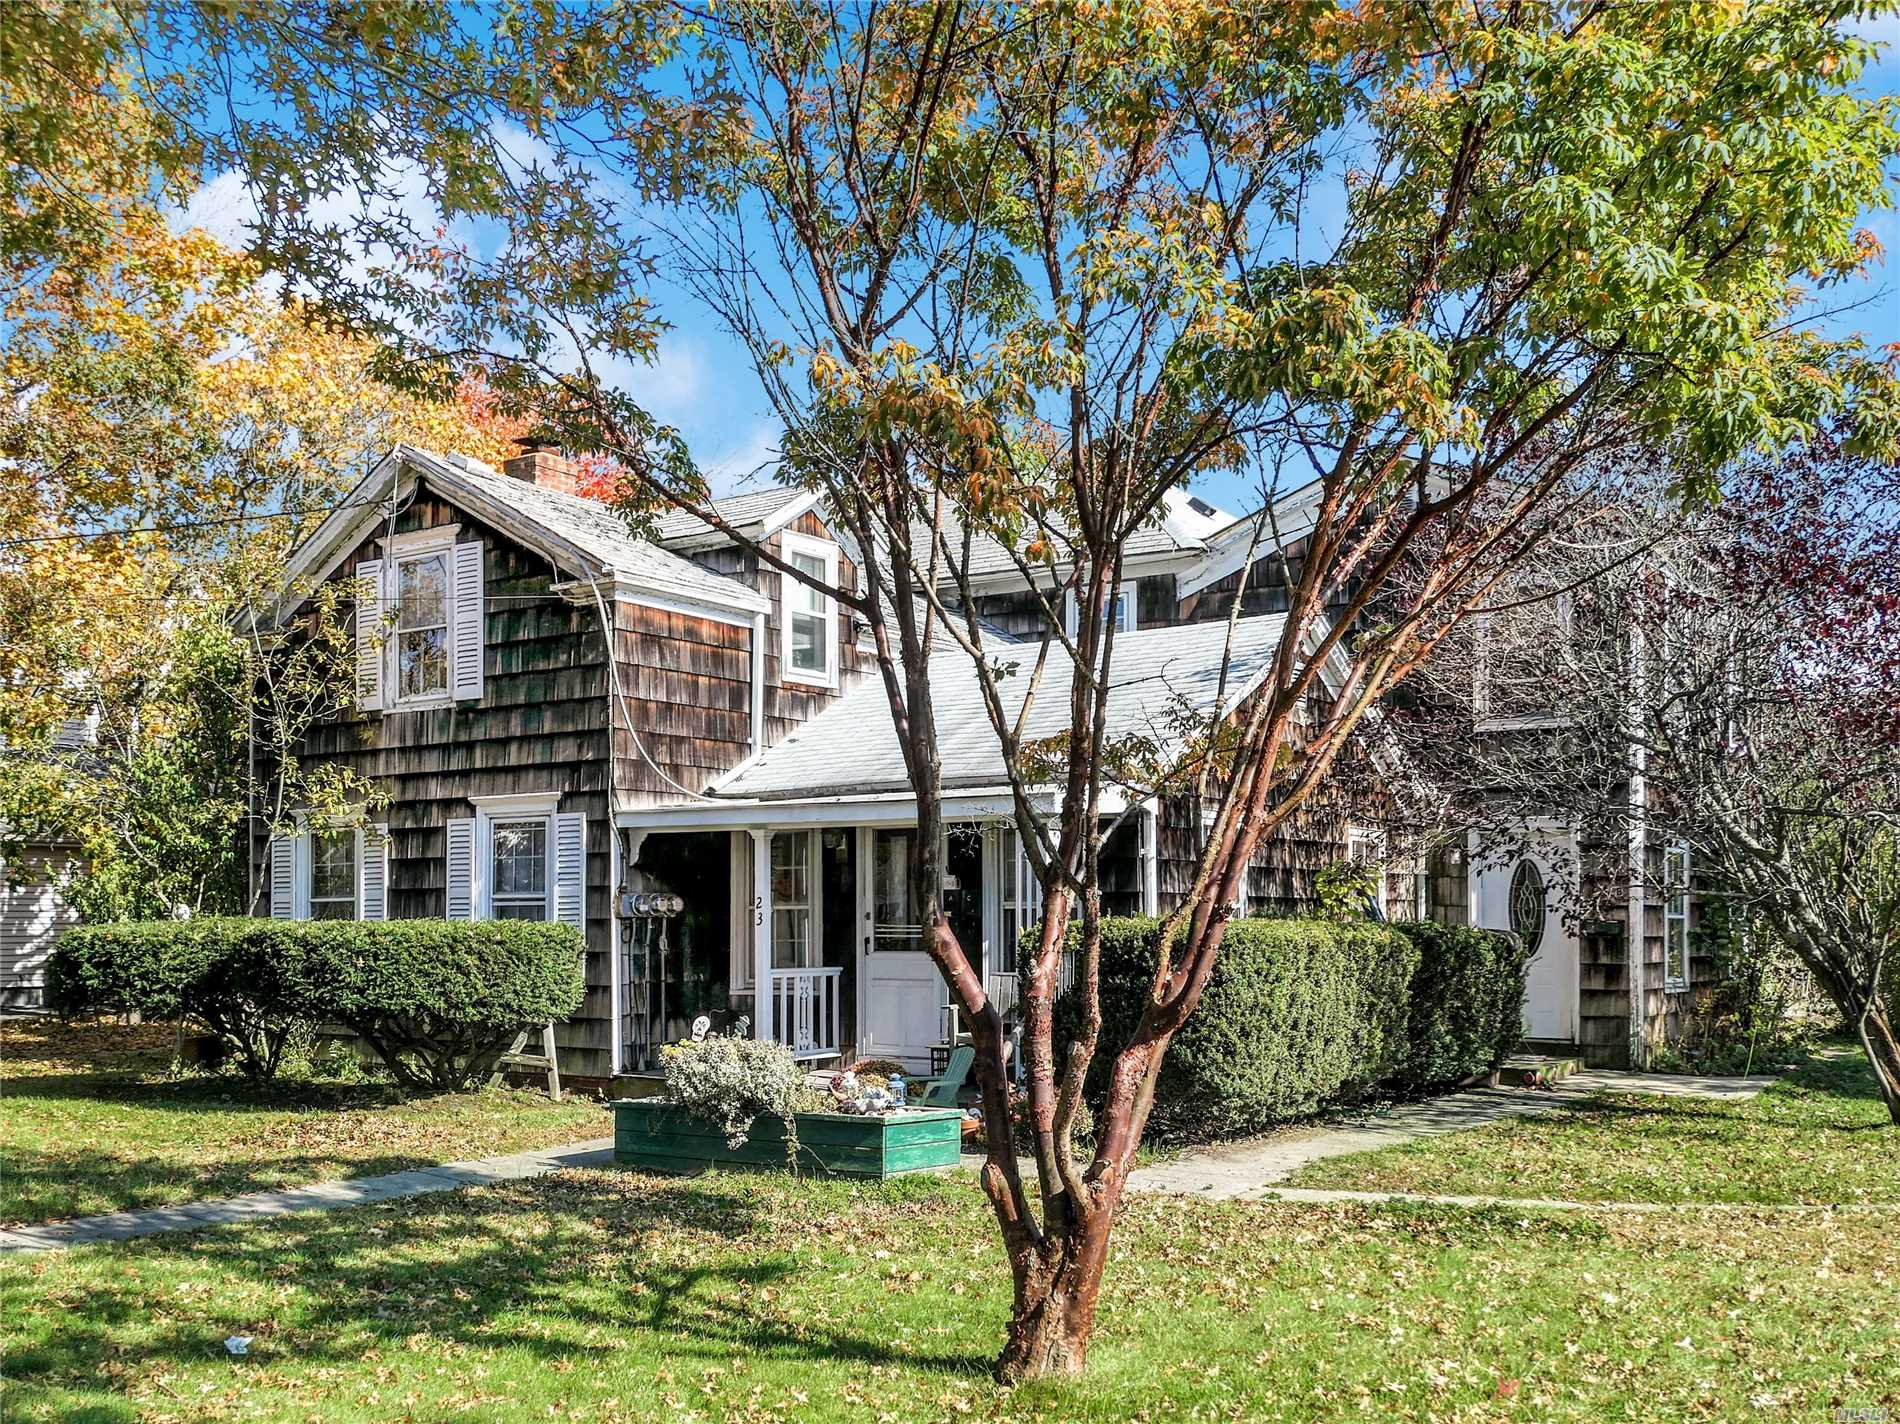 Photo of home for sale at 23 Station Rd, Bellport Village NY